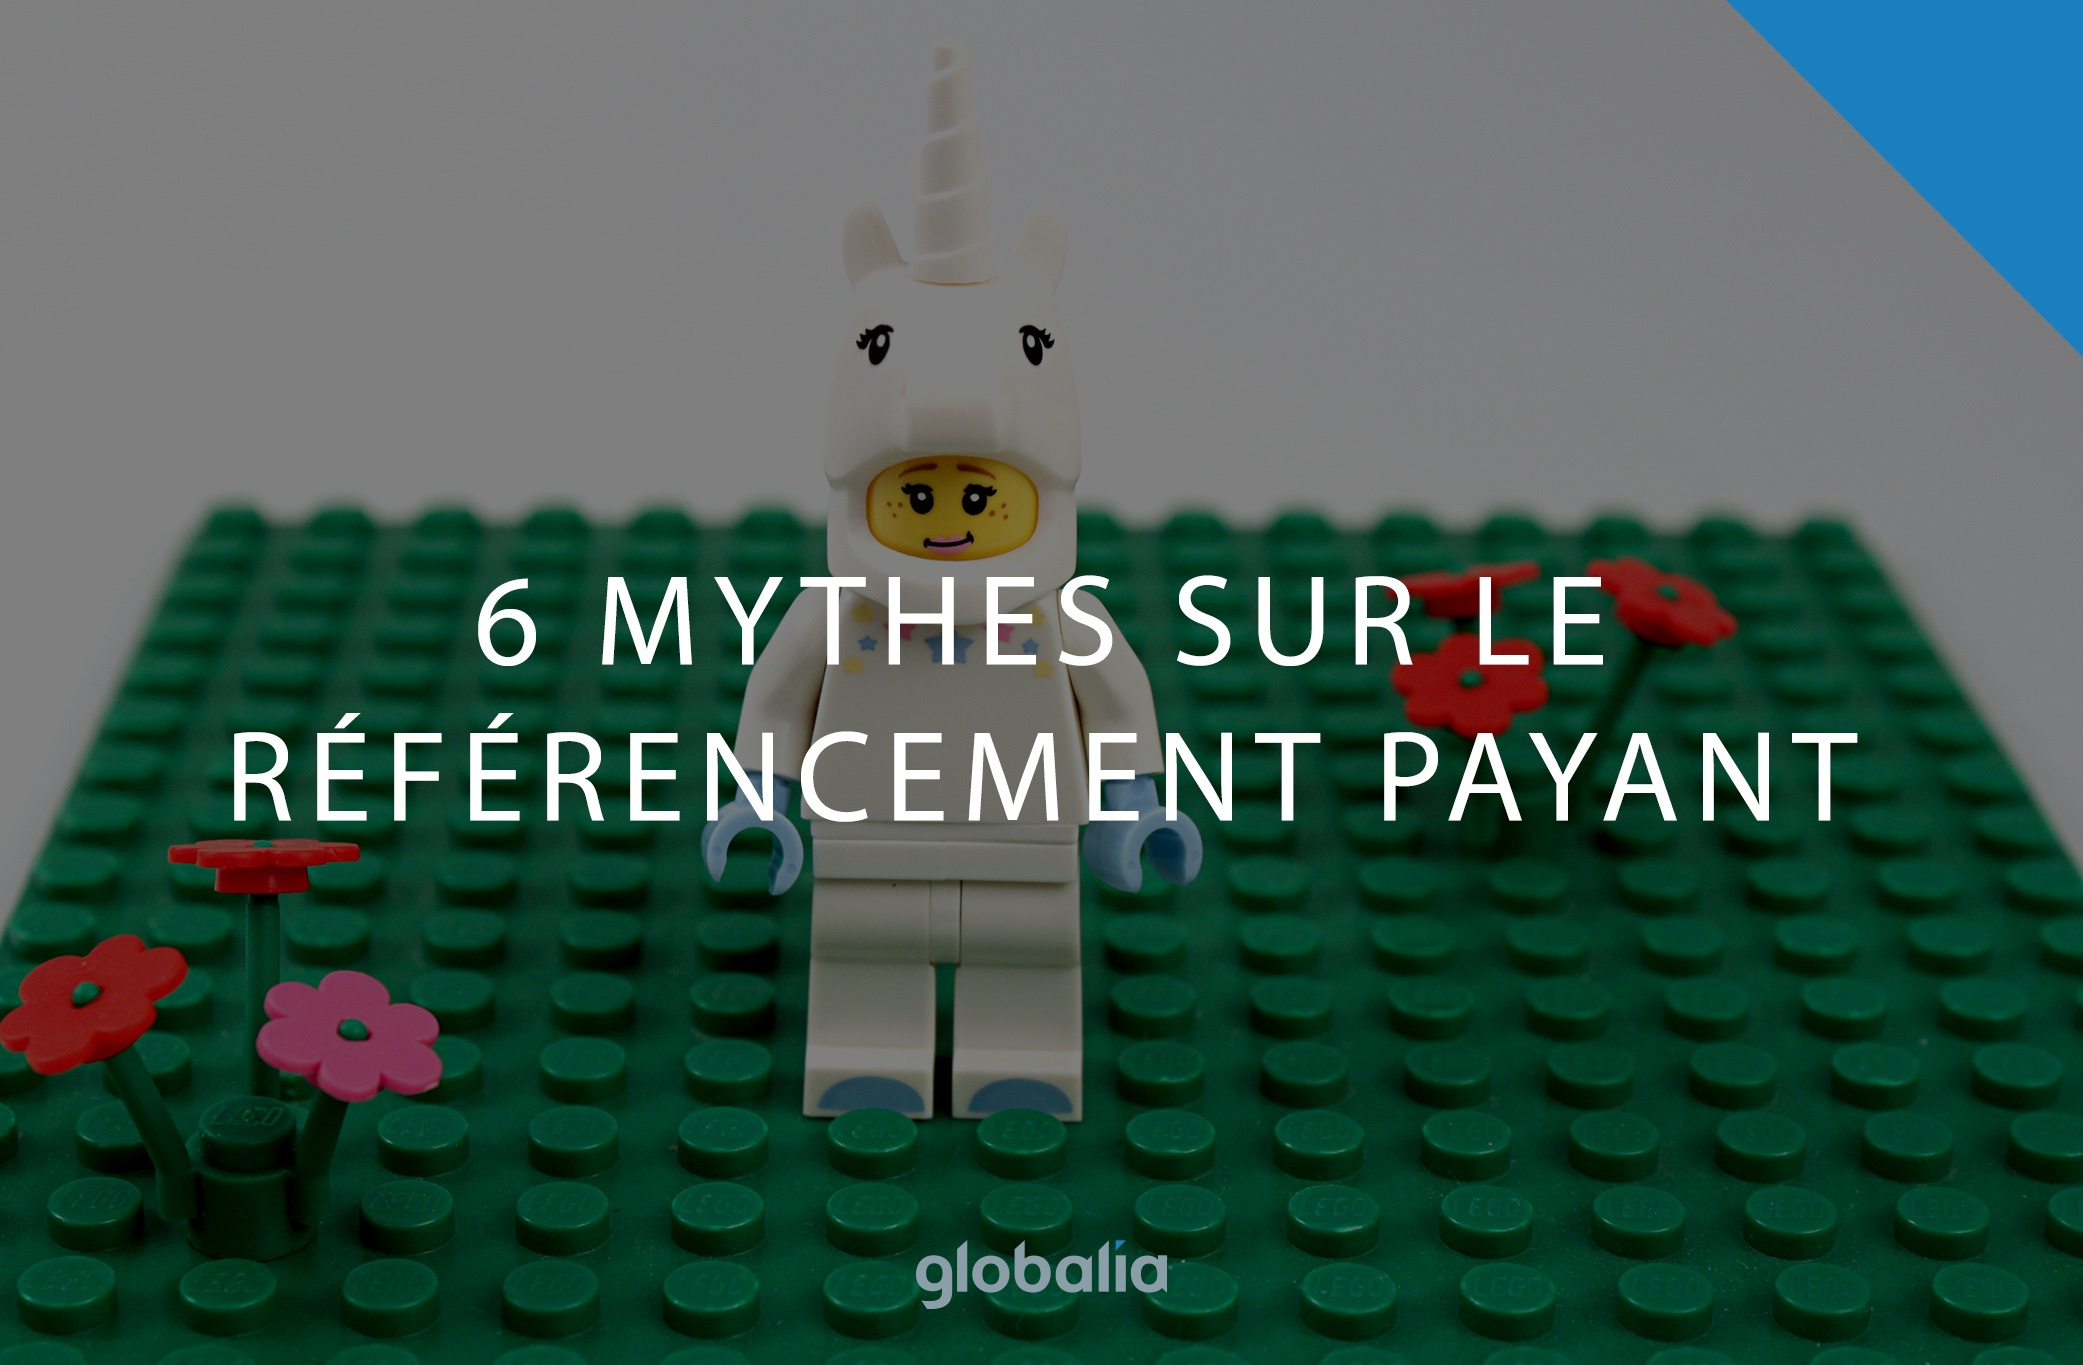 mythes-referencement-payant.jpg